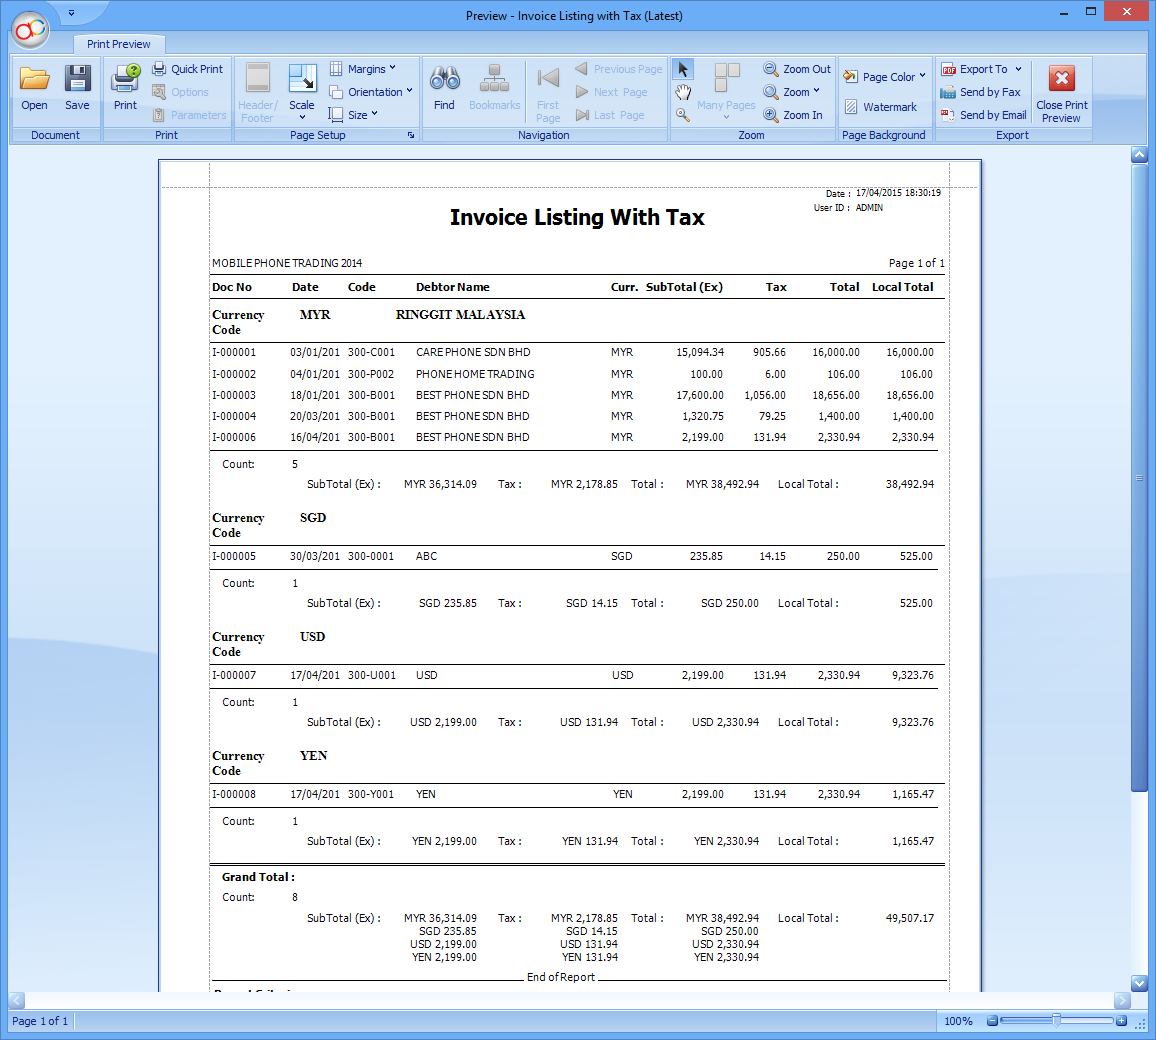 Invoice Listing with Tax